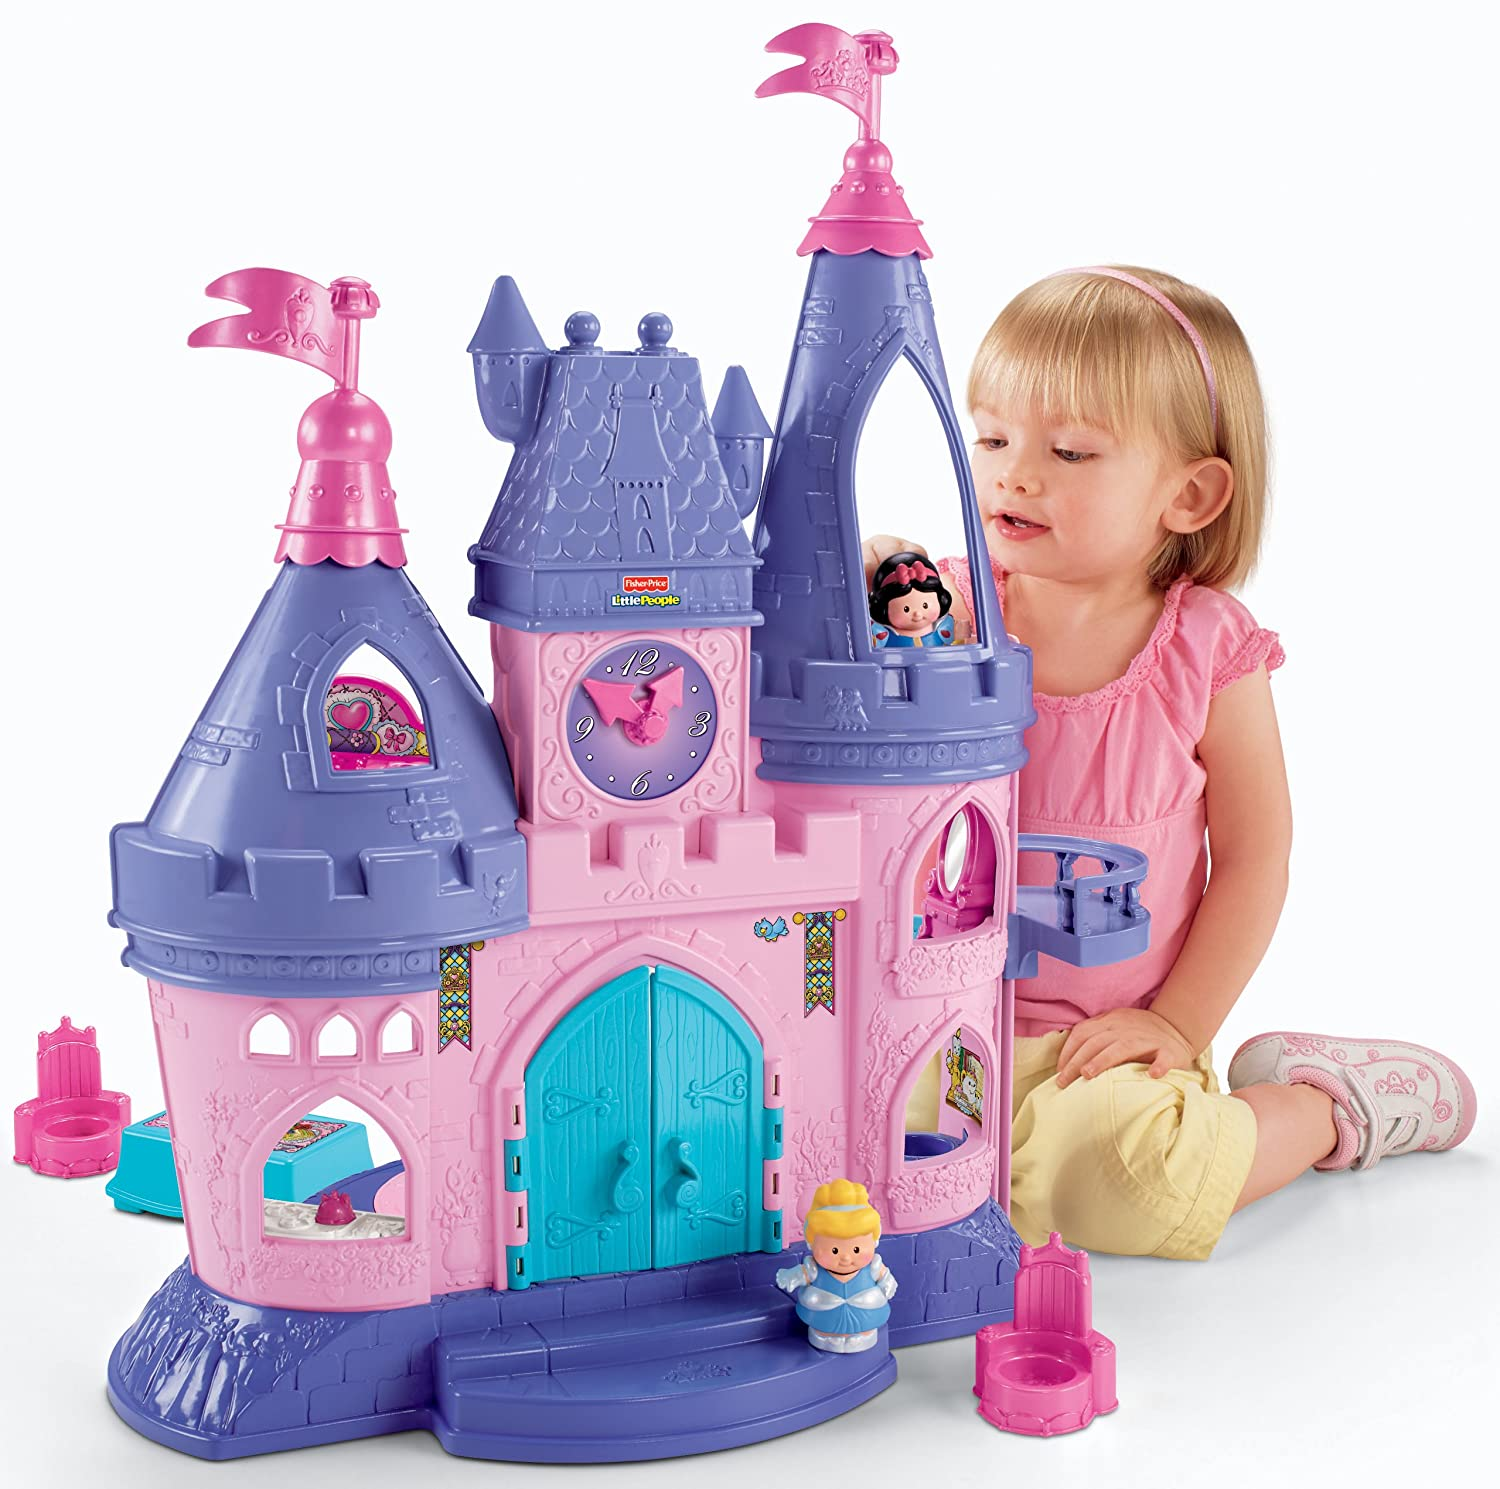 Toys For Toddlers One To Three Years : Best gifts for year old girls in itsy bitsy fun